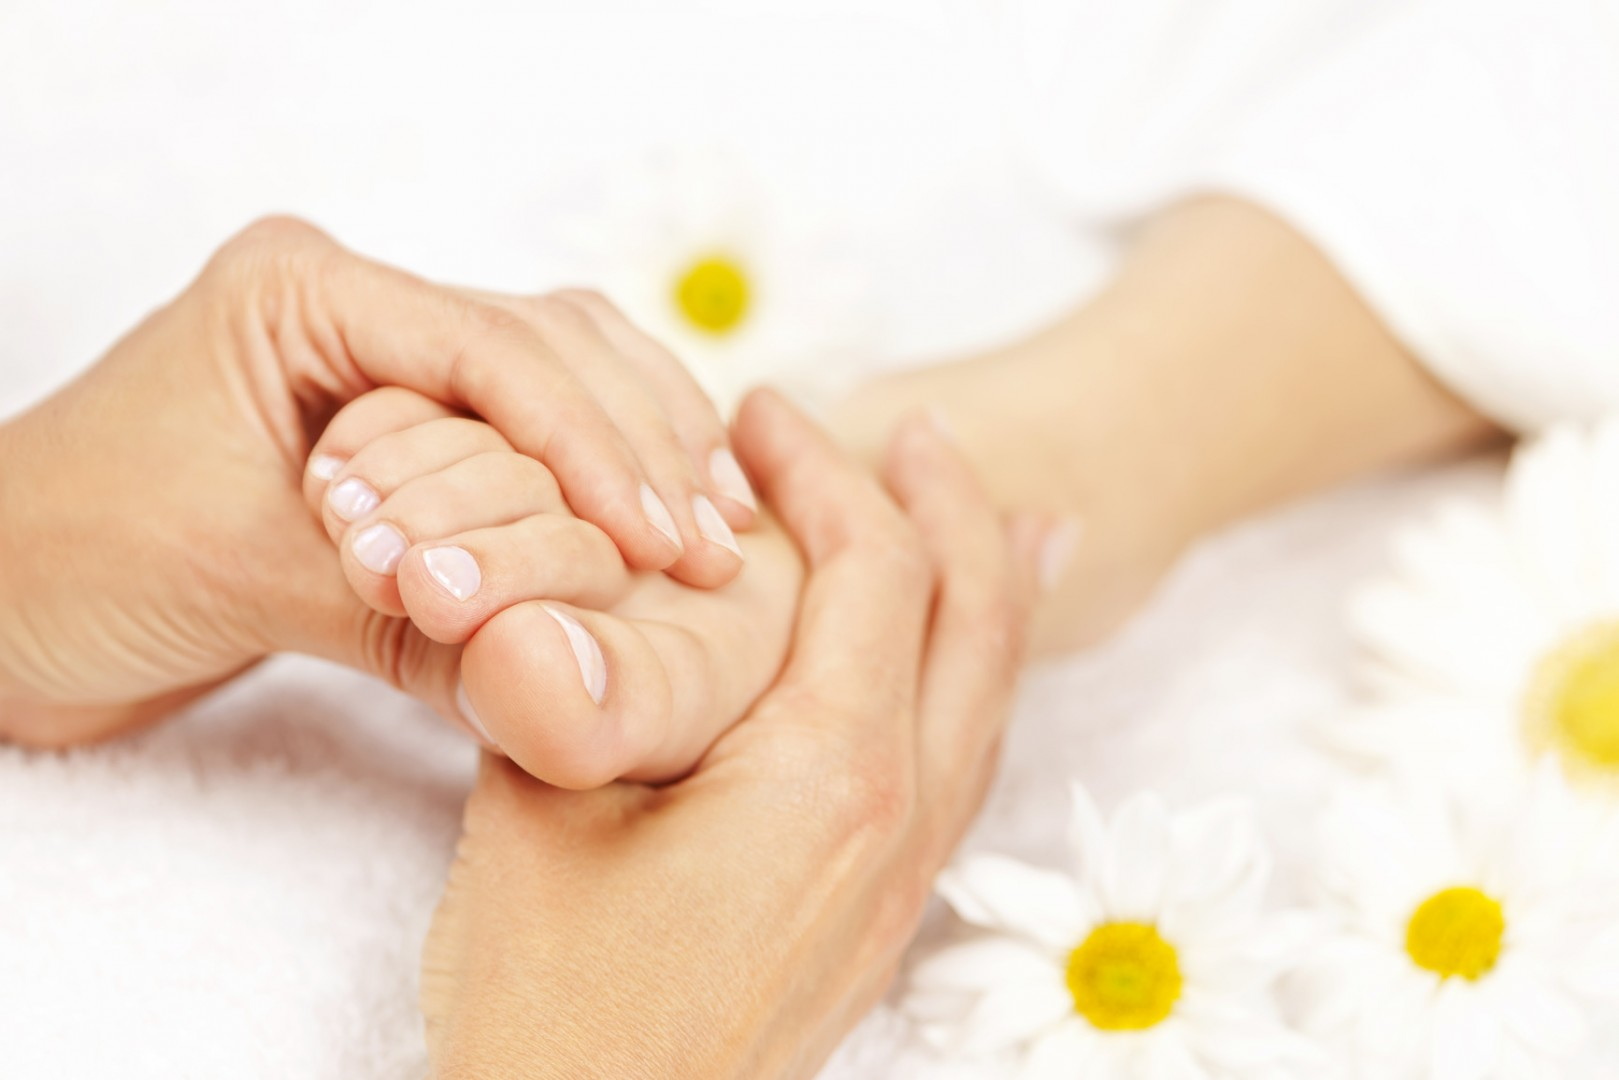 Natural Treatment For Foot Cramps